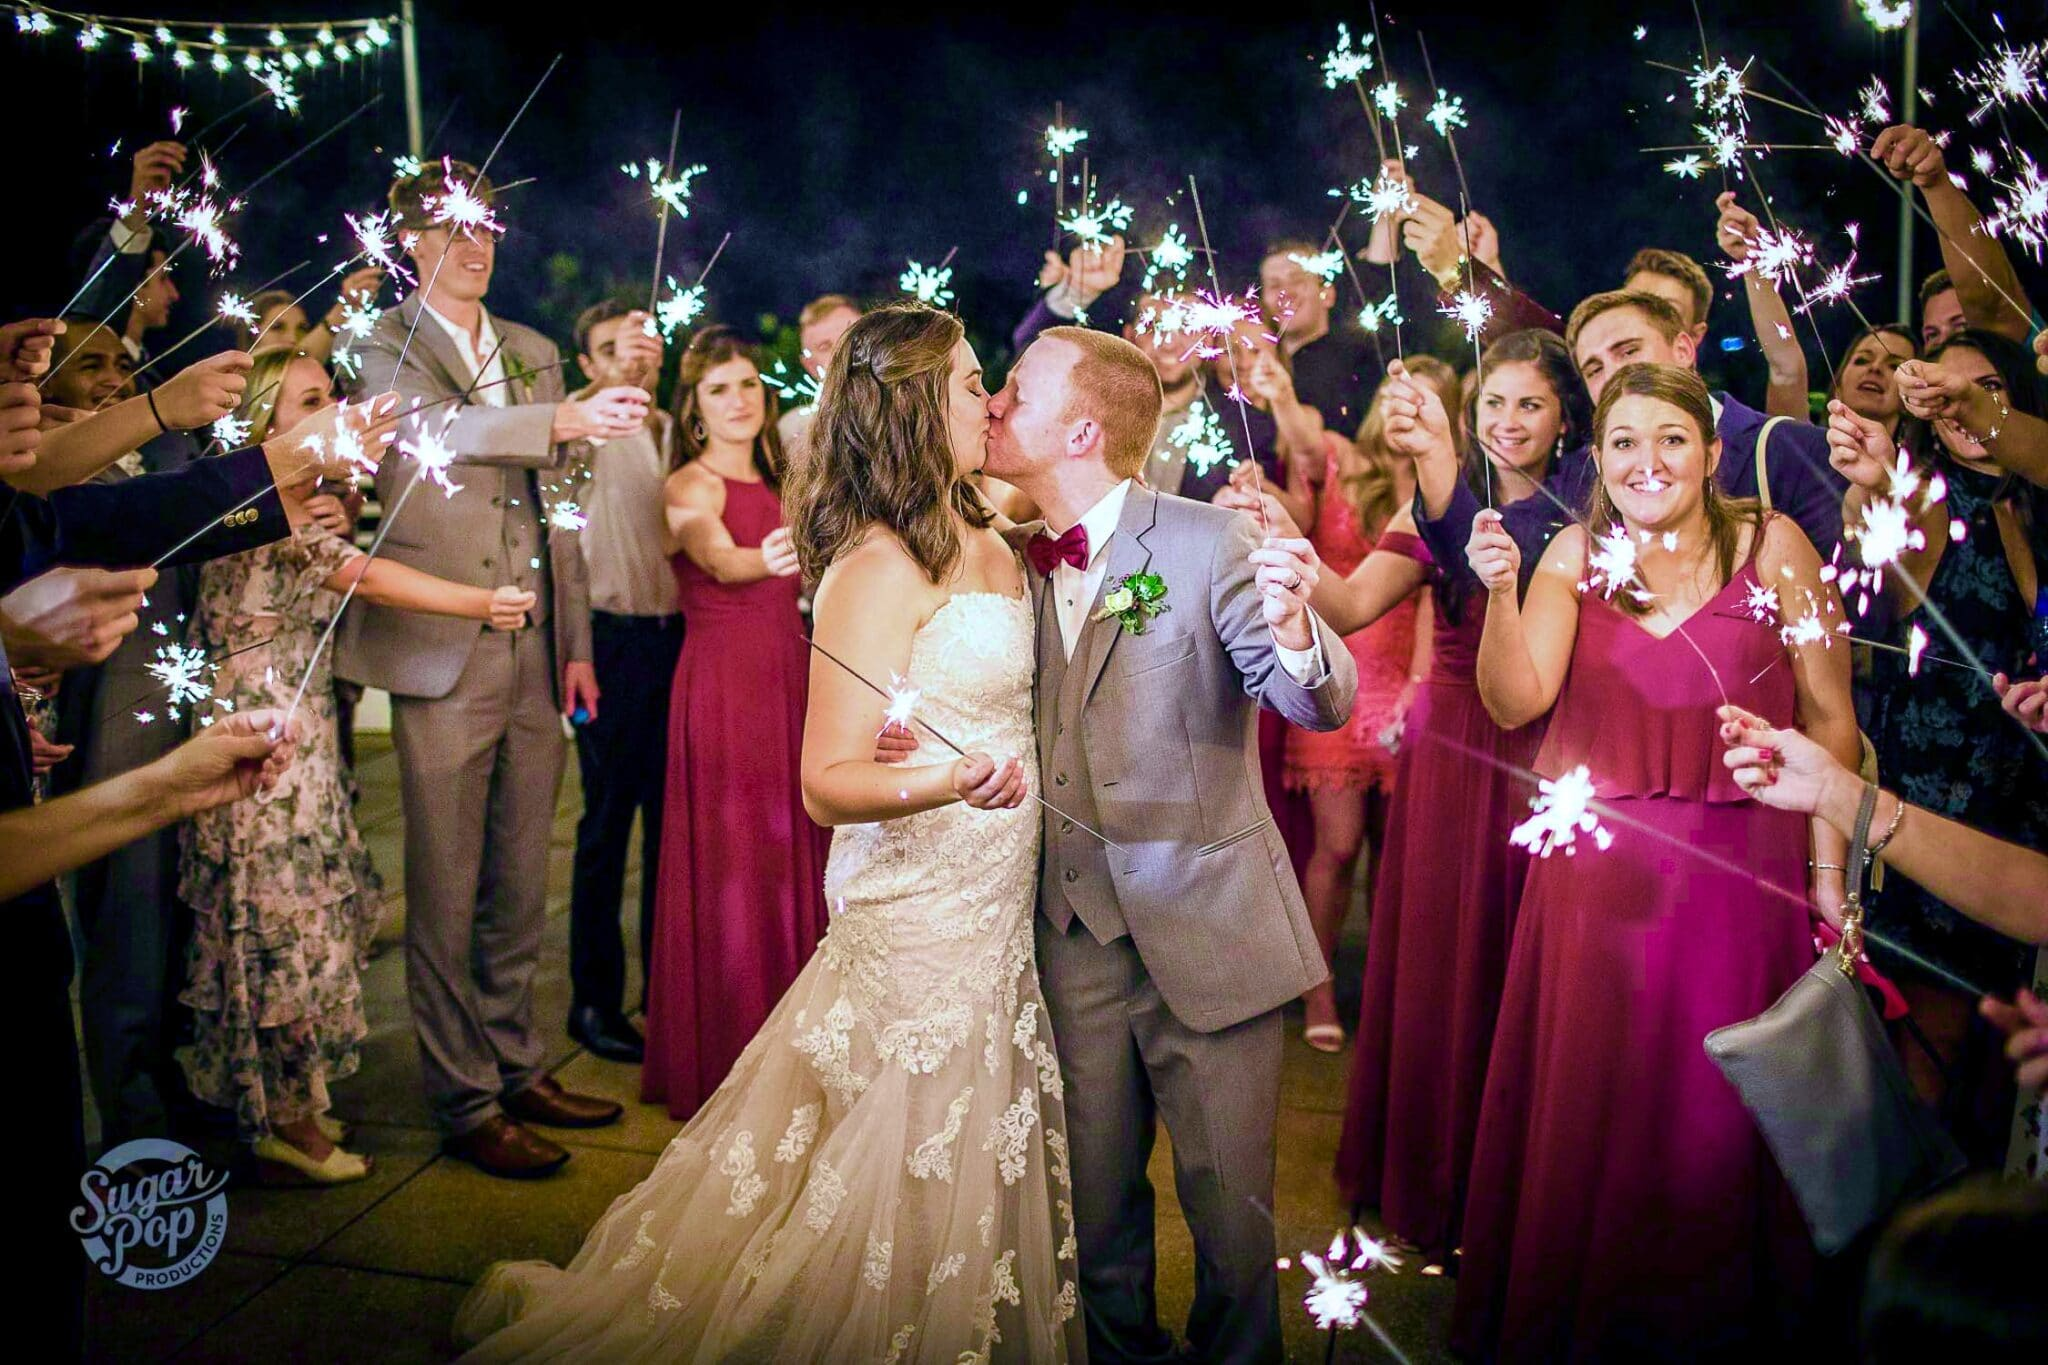 husband and wife kiss on wedding day while holding sparklers as guests around them hold sparklers too